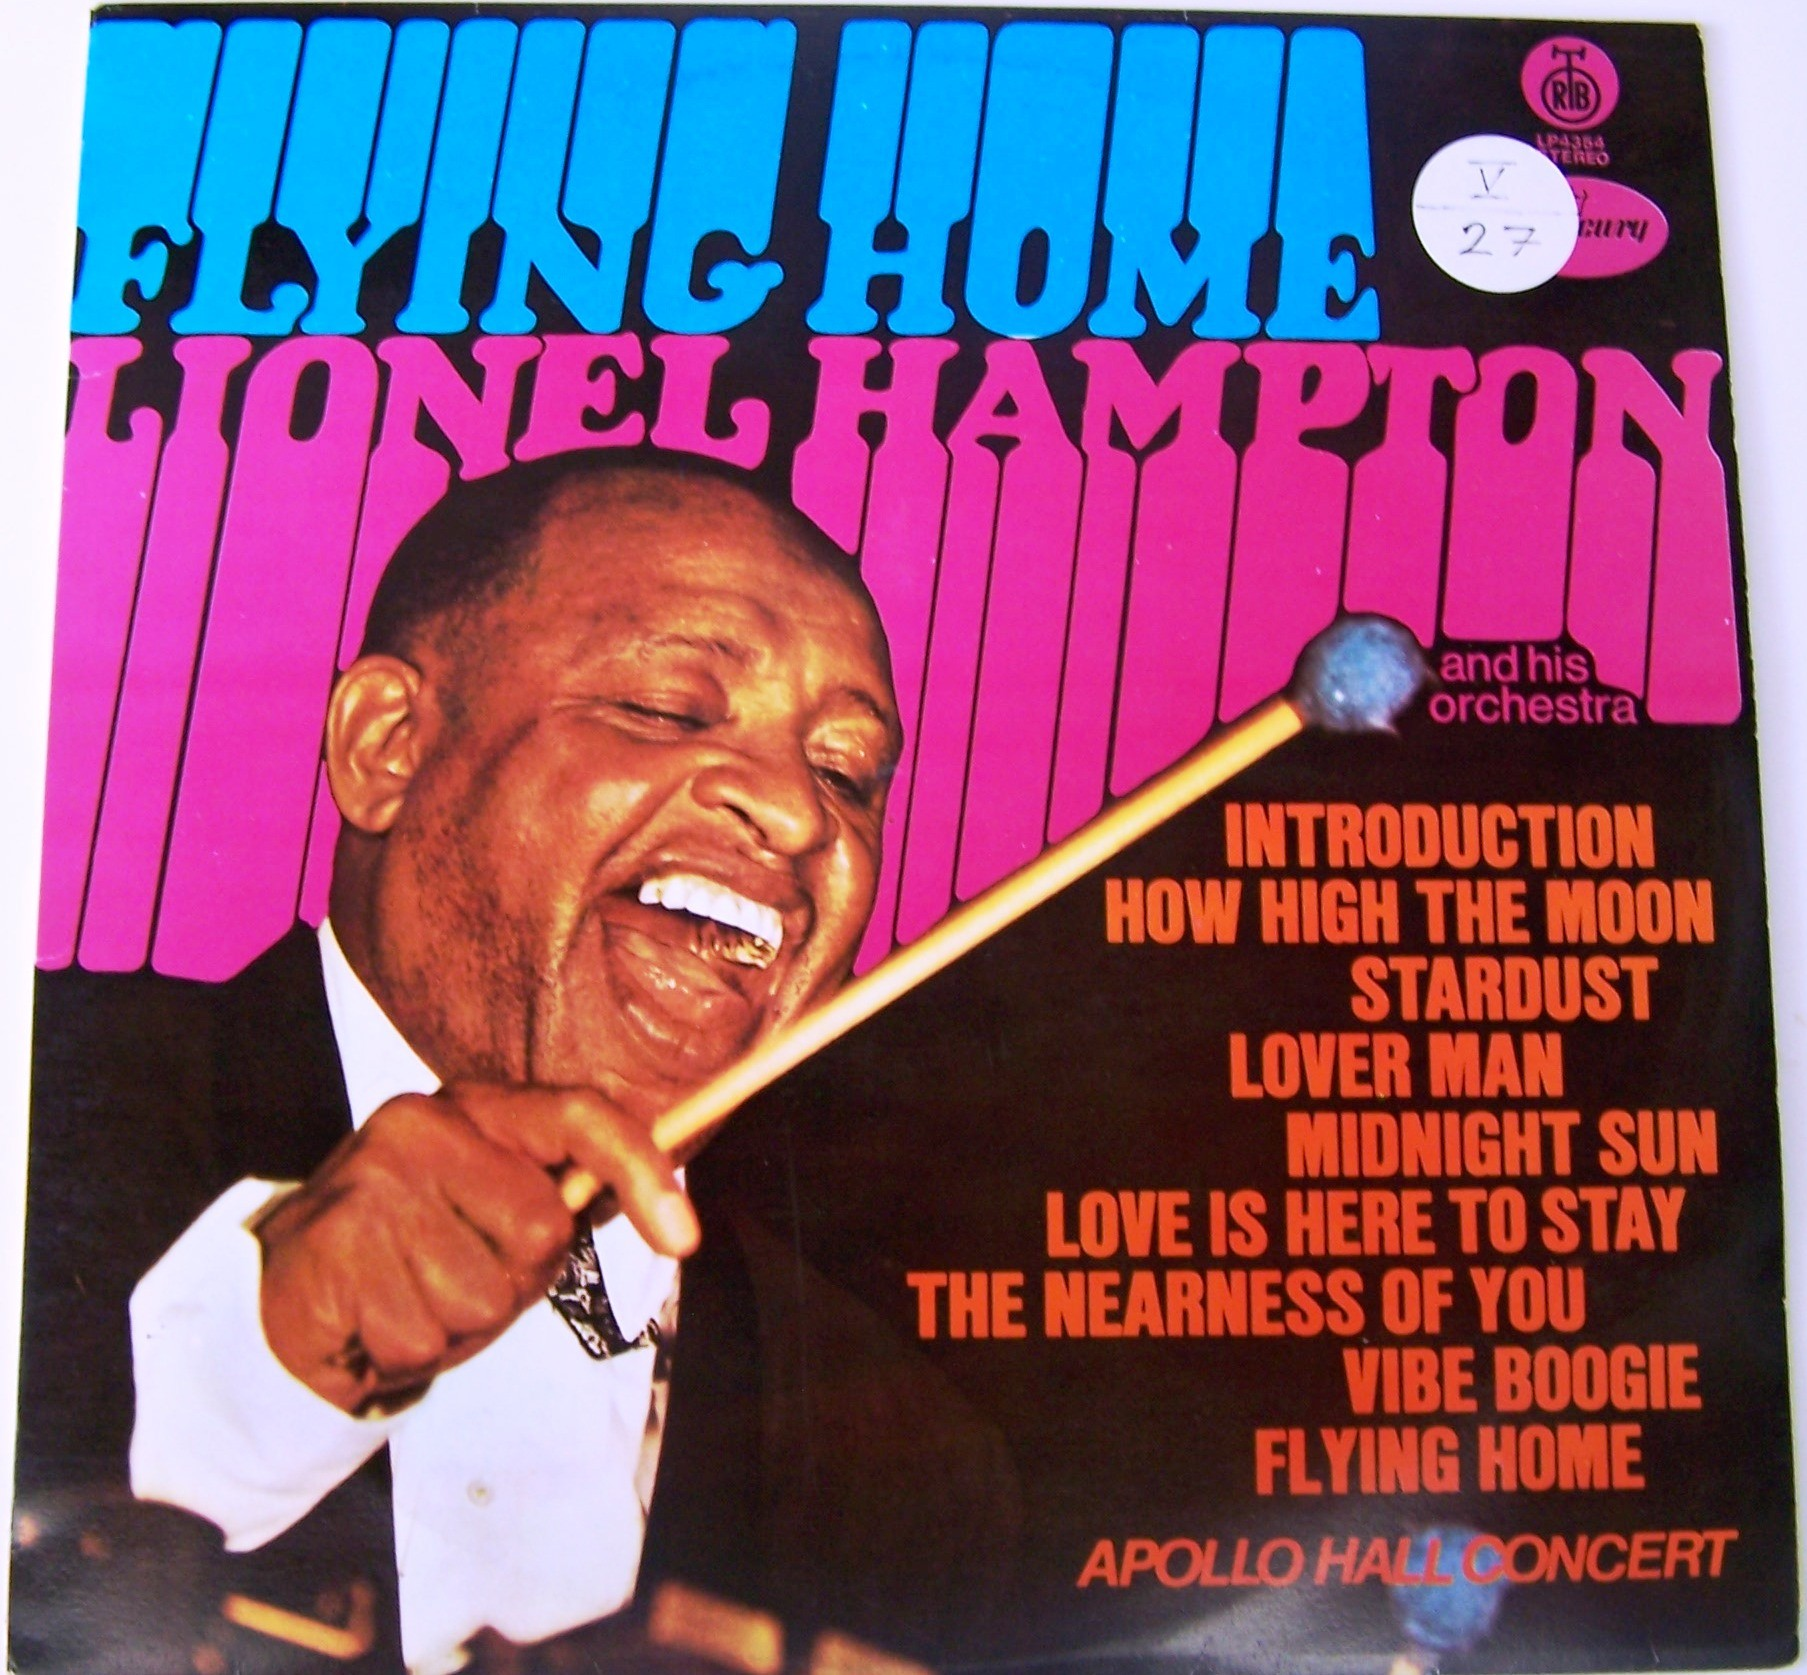 Hampton Lionel - Flying Home - Apollo Hall Concert